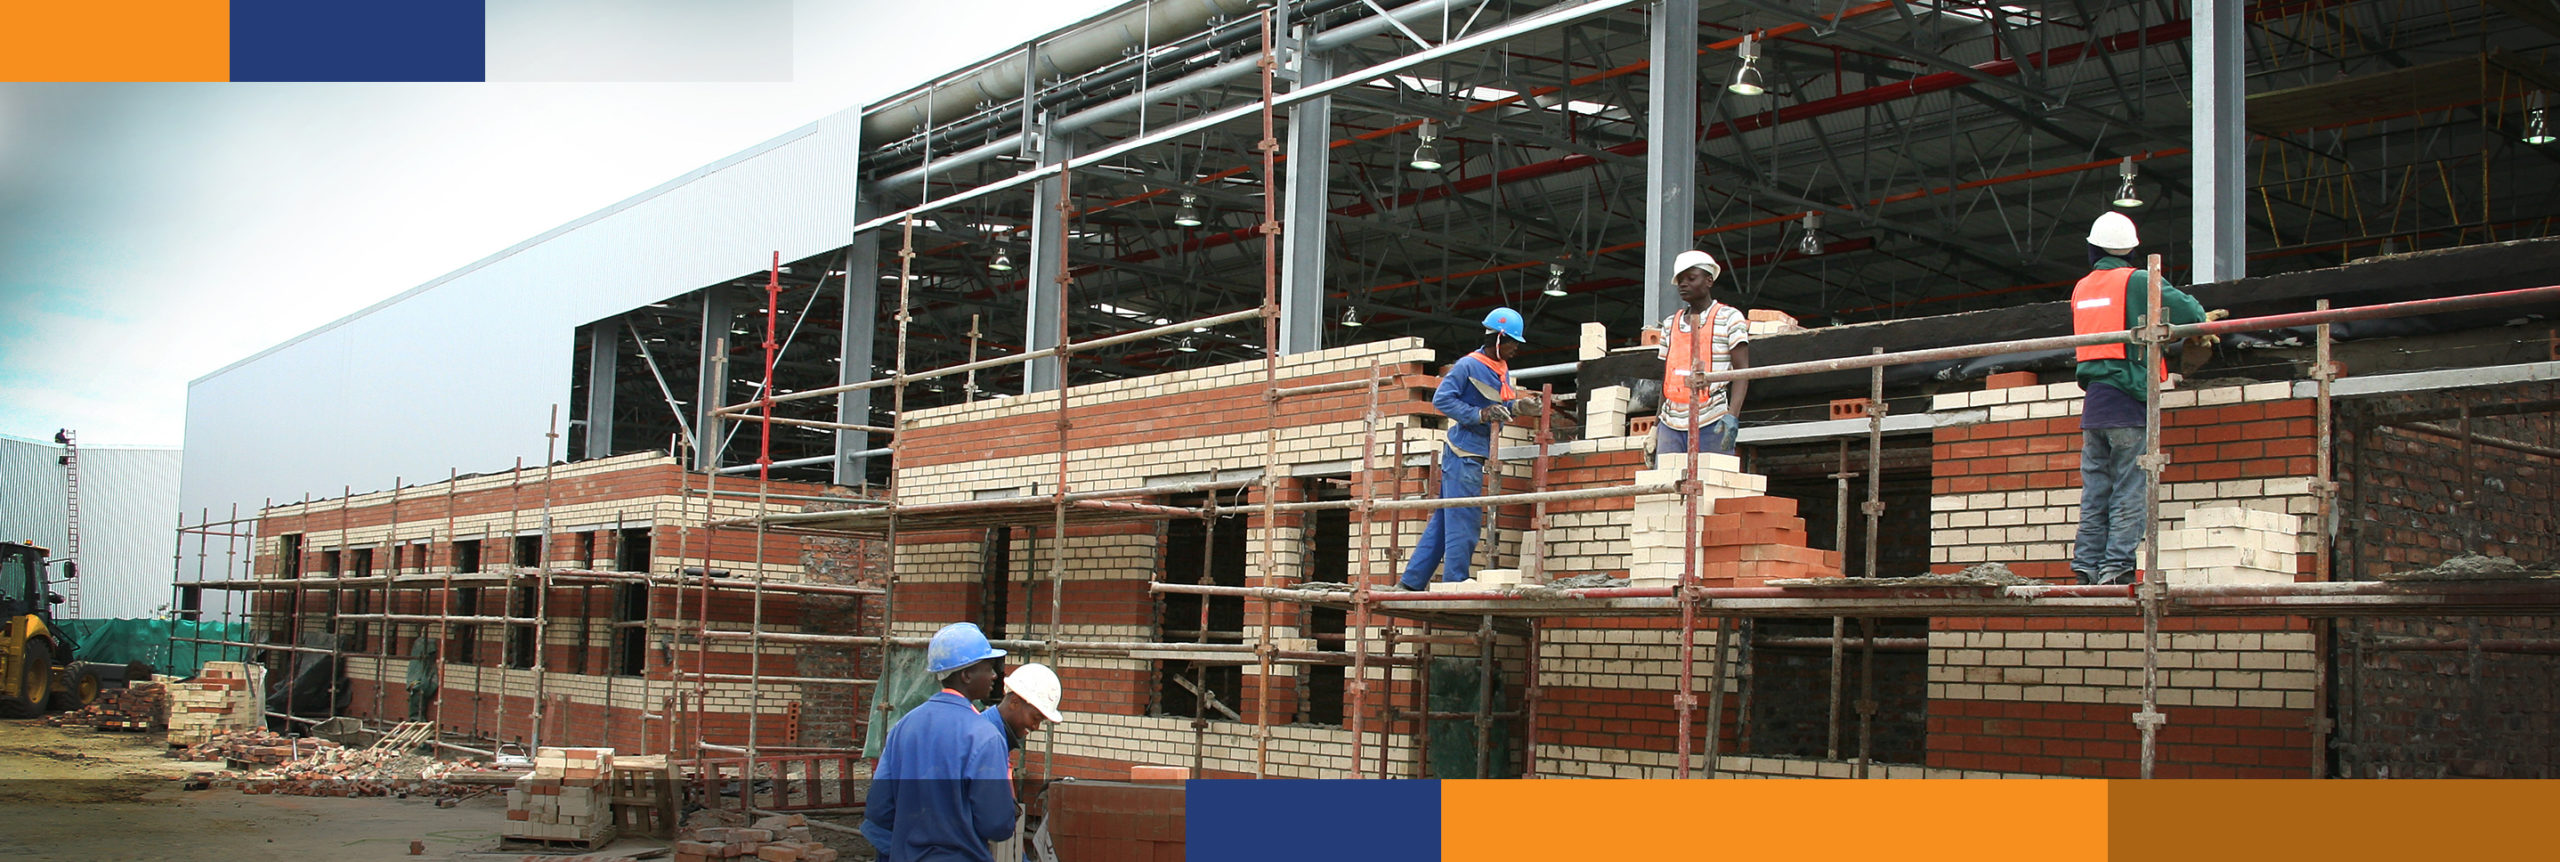 BUILDING A SUSTAINABLE CONSTRUCTION INDUSTRY